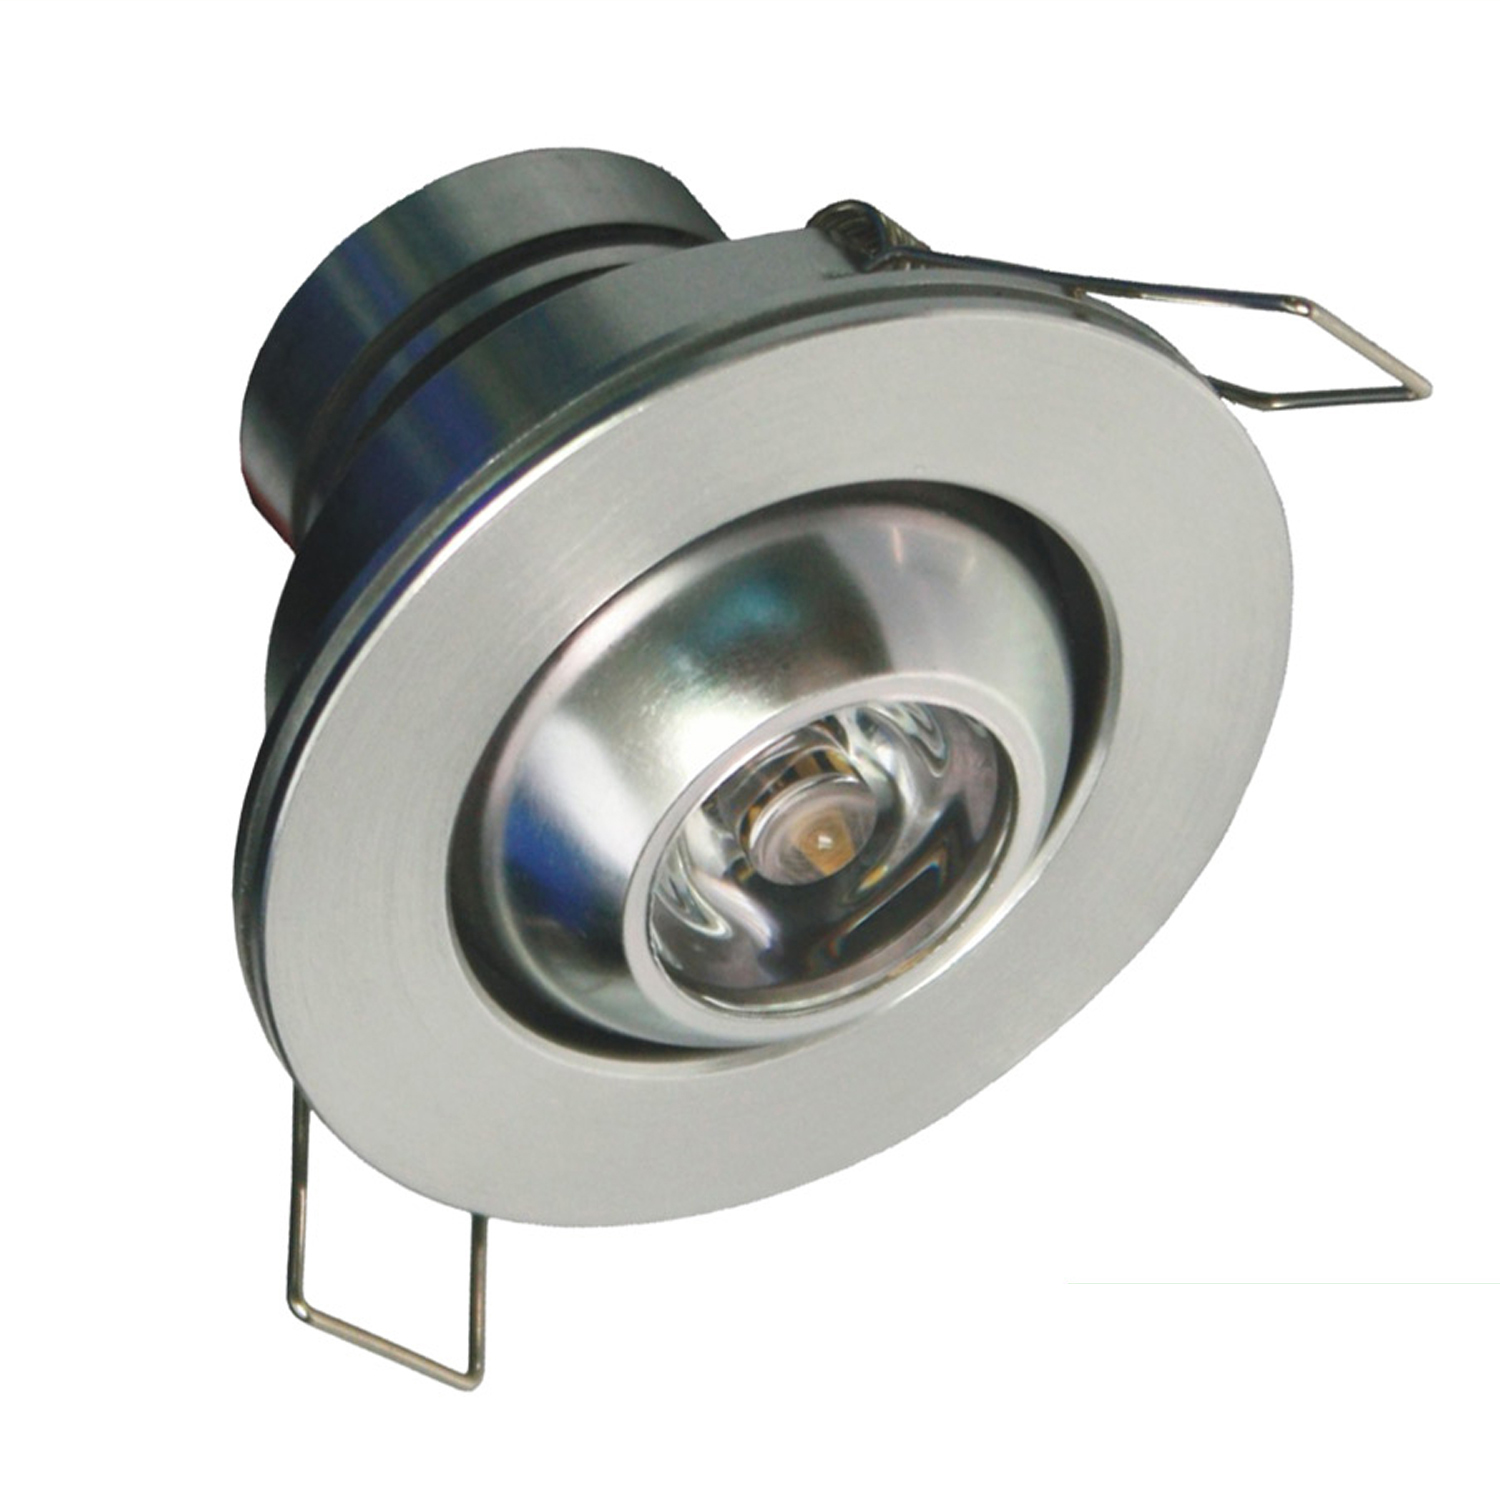 Tiltable 12VDC LED Eye Puck Light for Cabinet Lighting